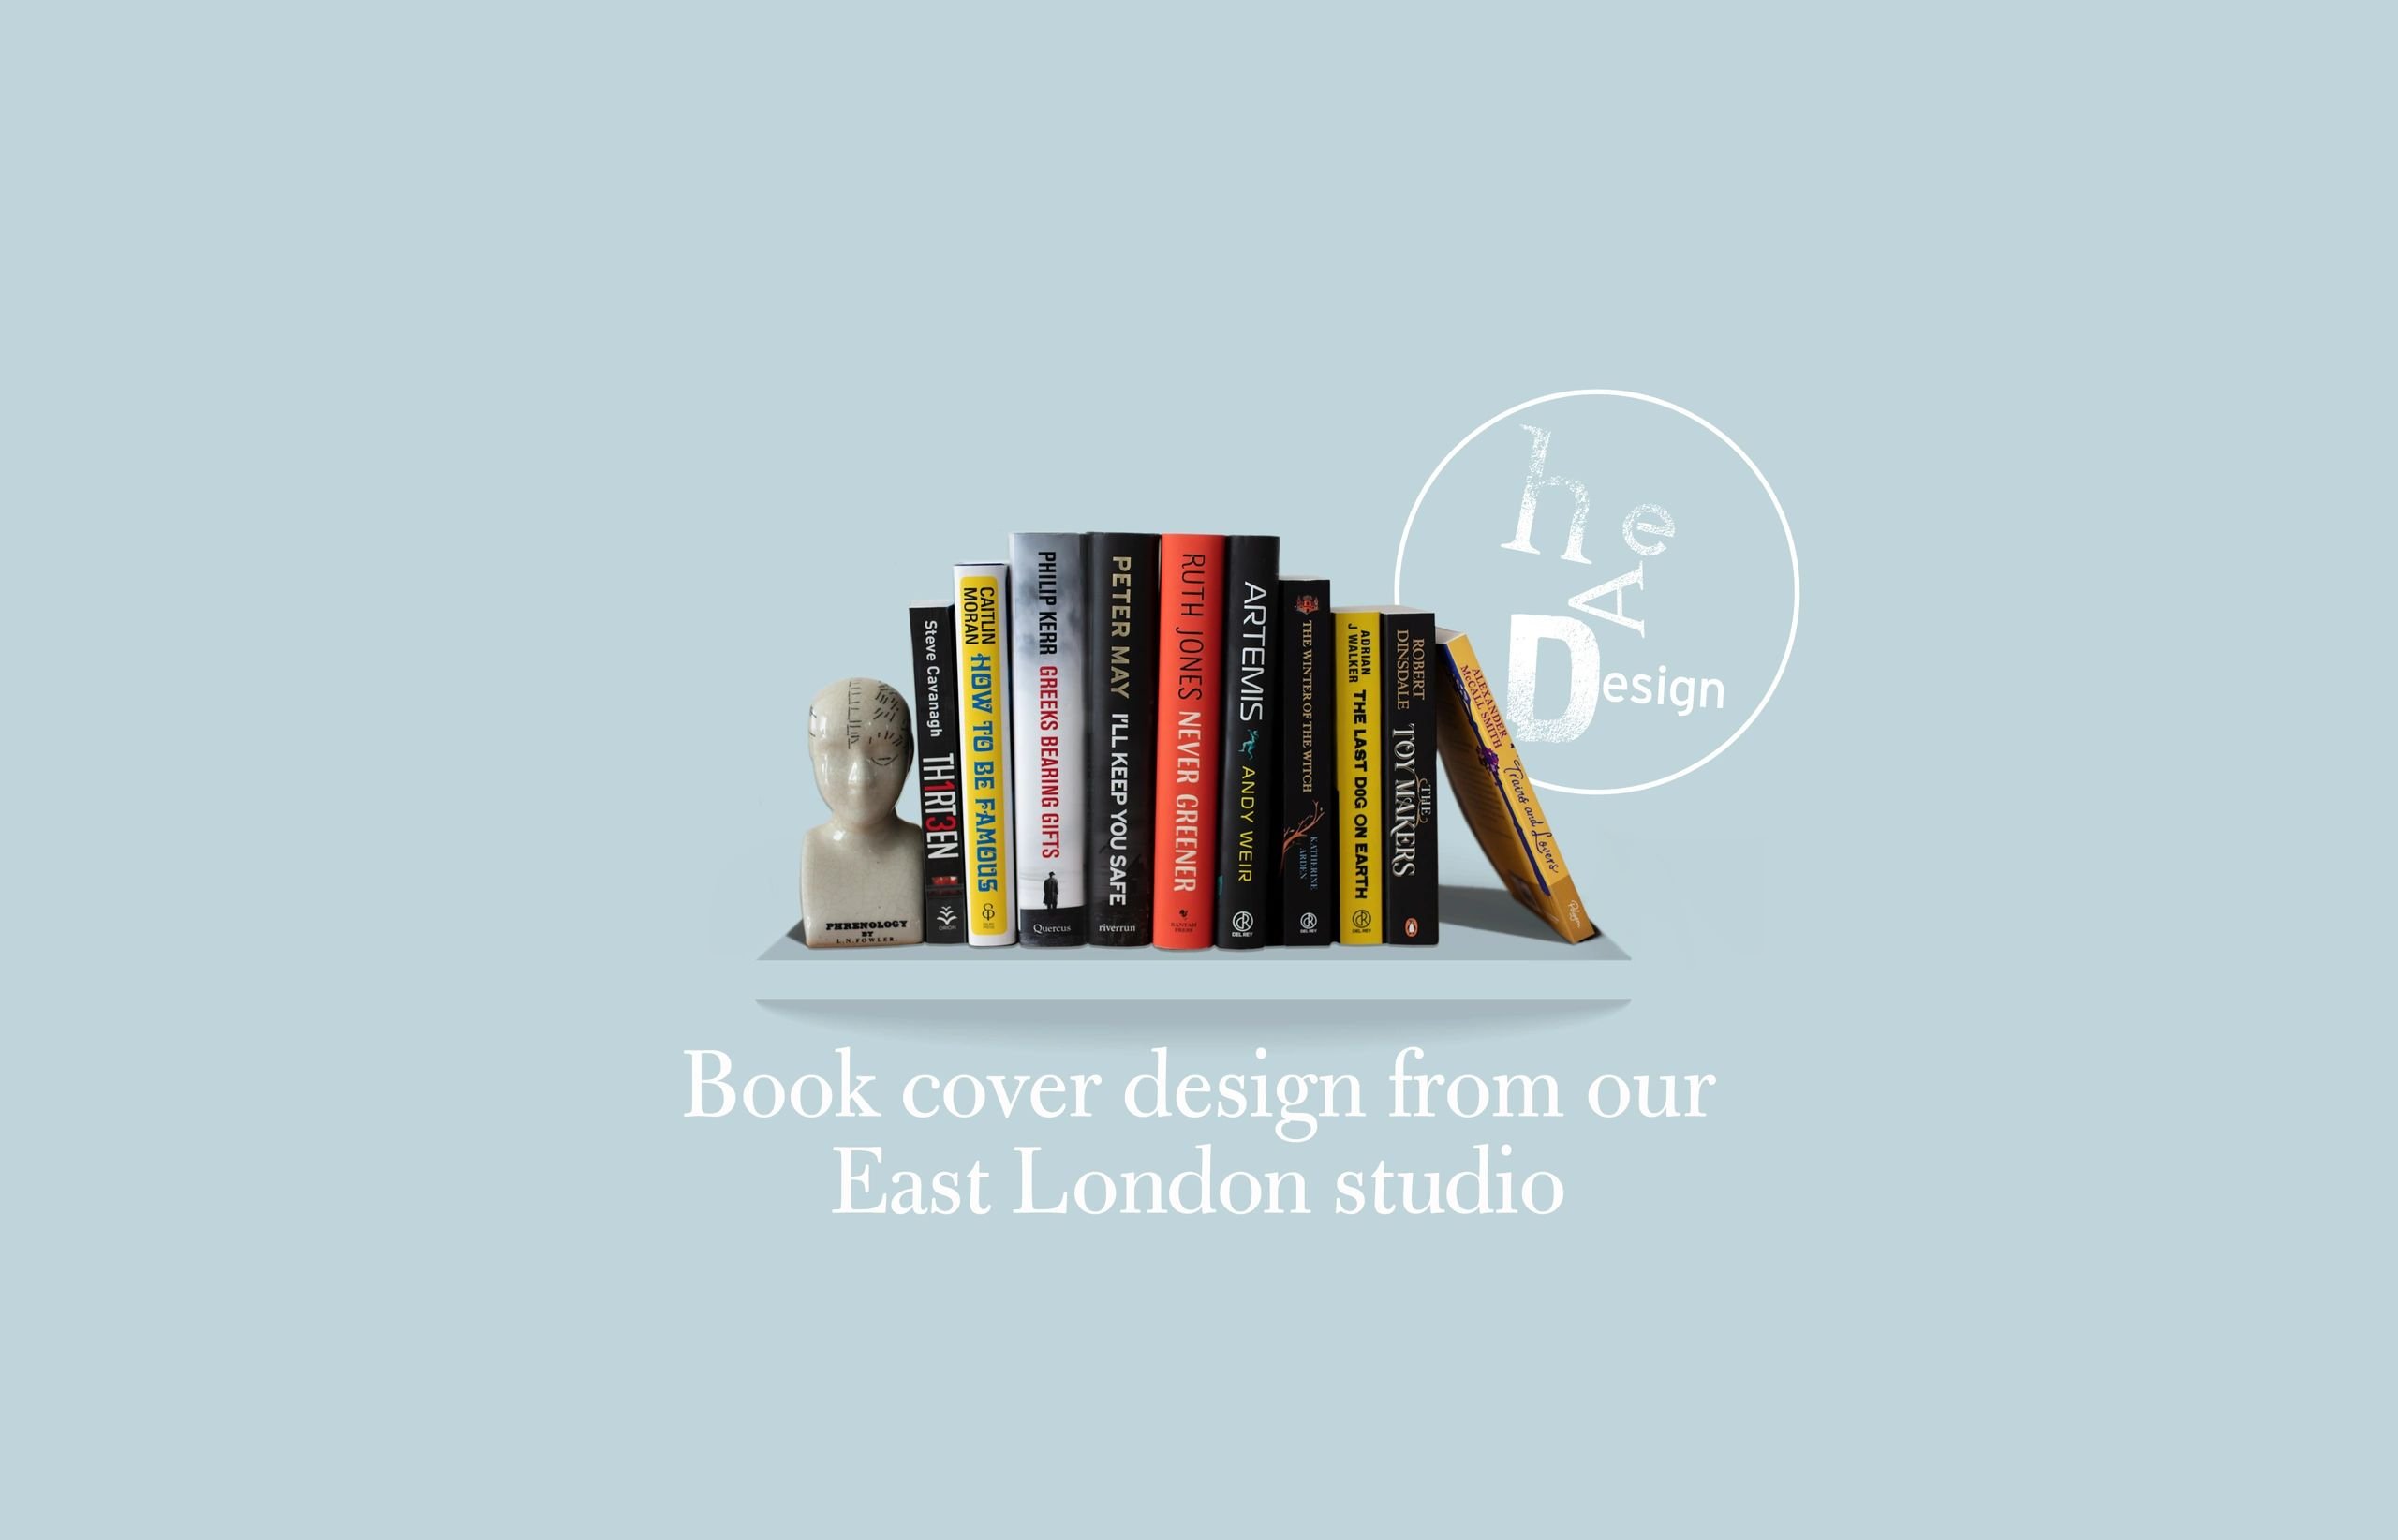 Book cover design from our studio in East London. Our shelfie contains some of our latest work.